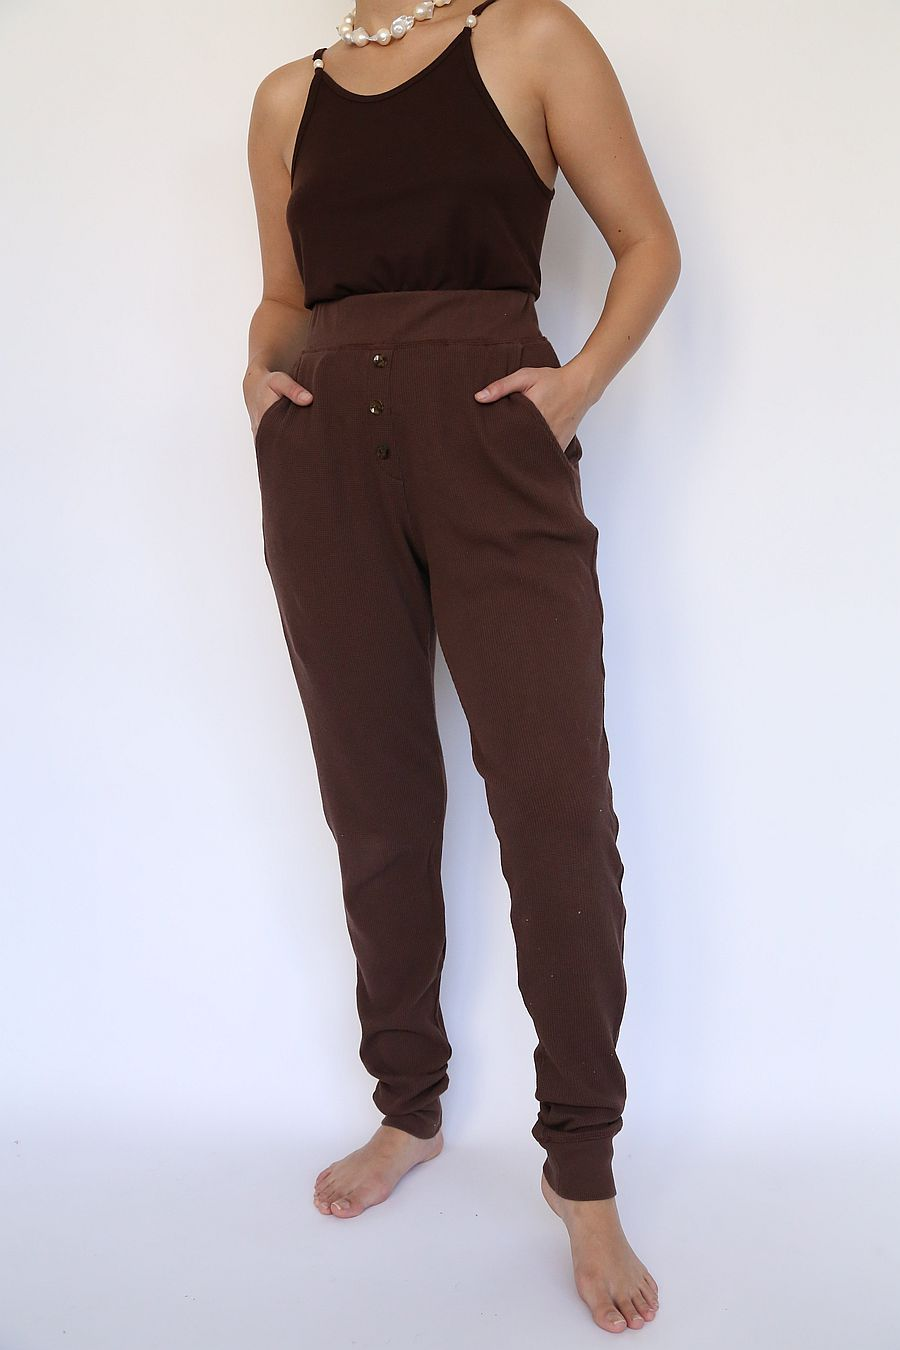 DONNI. Thermal Henley Sweatpant - Chocolate